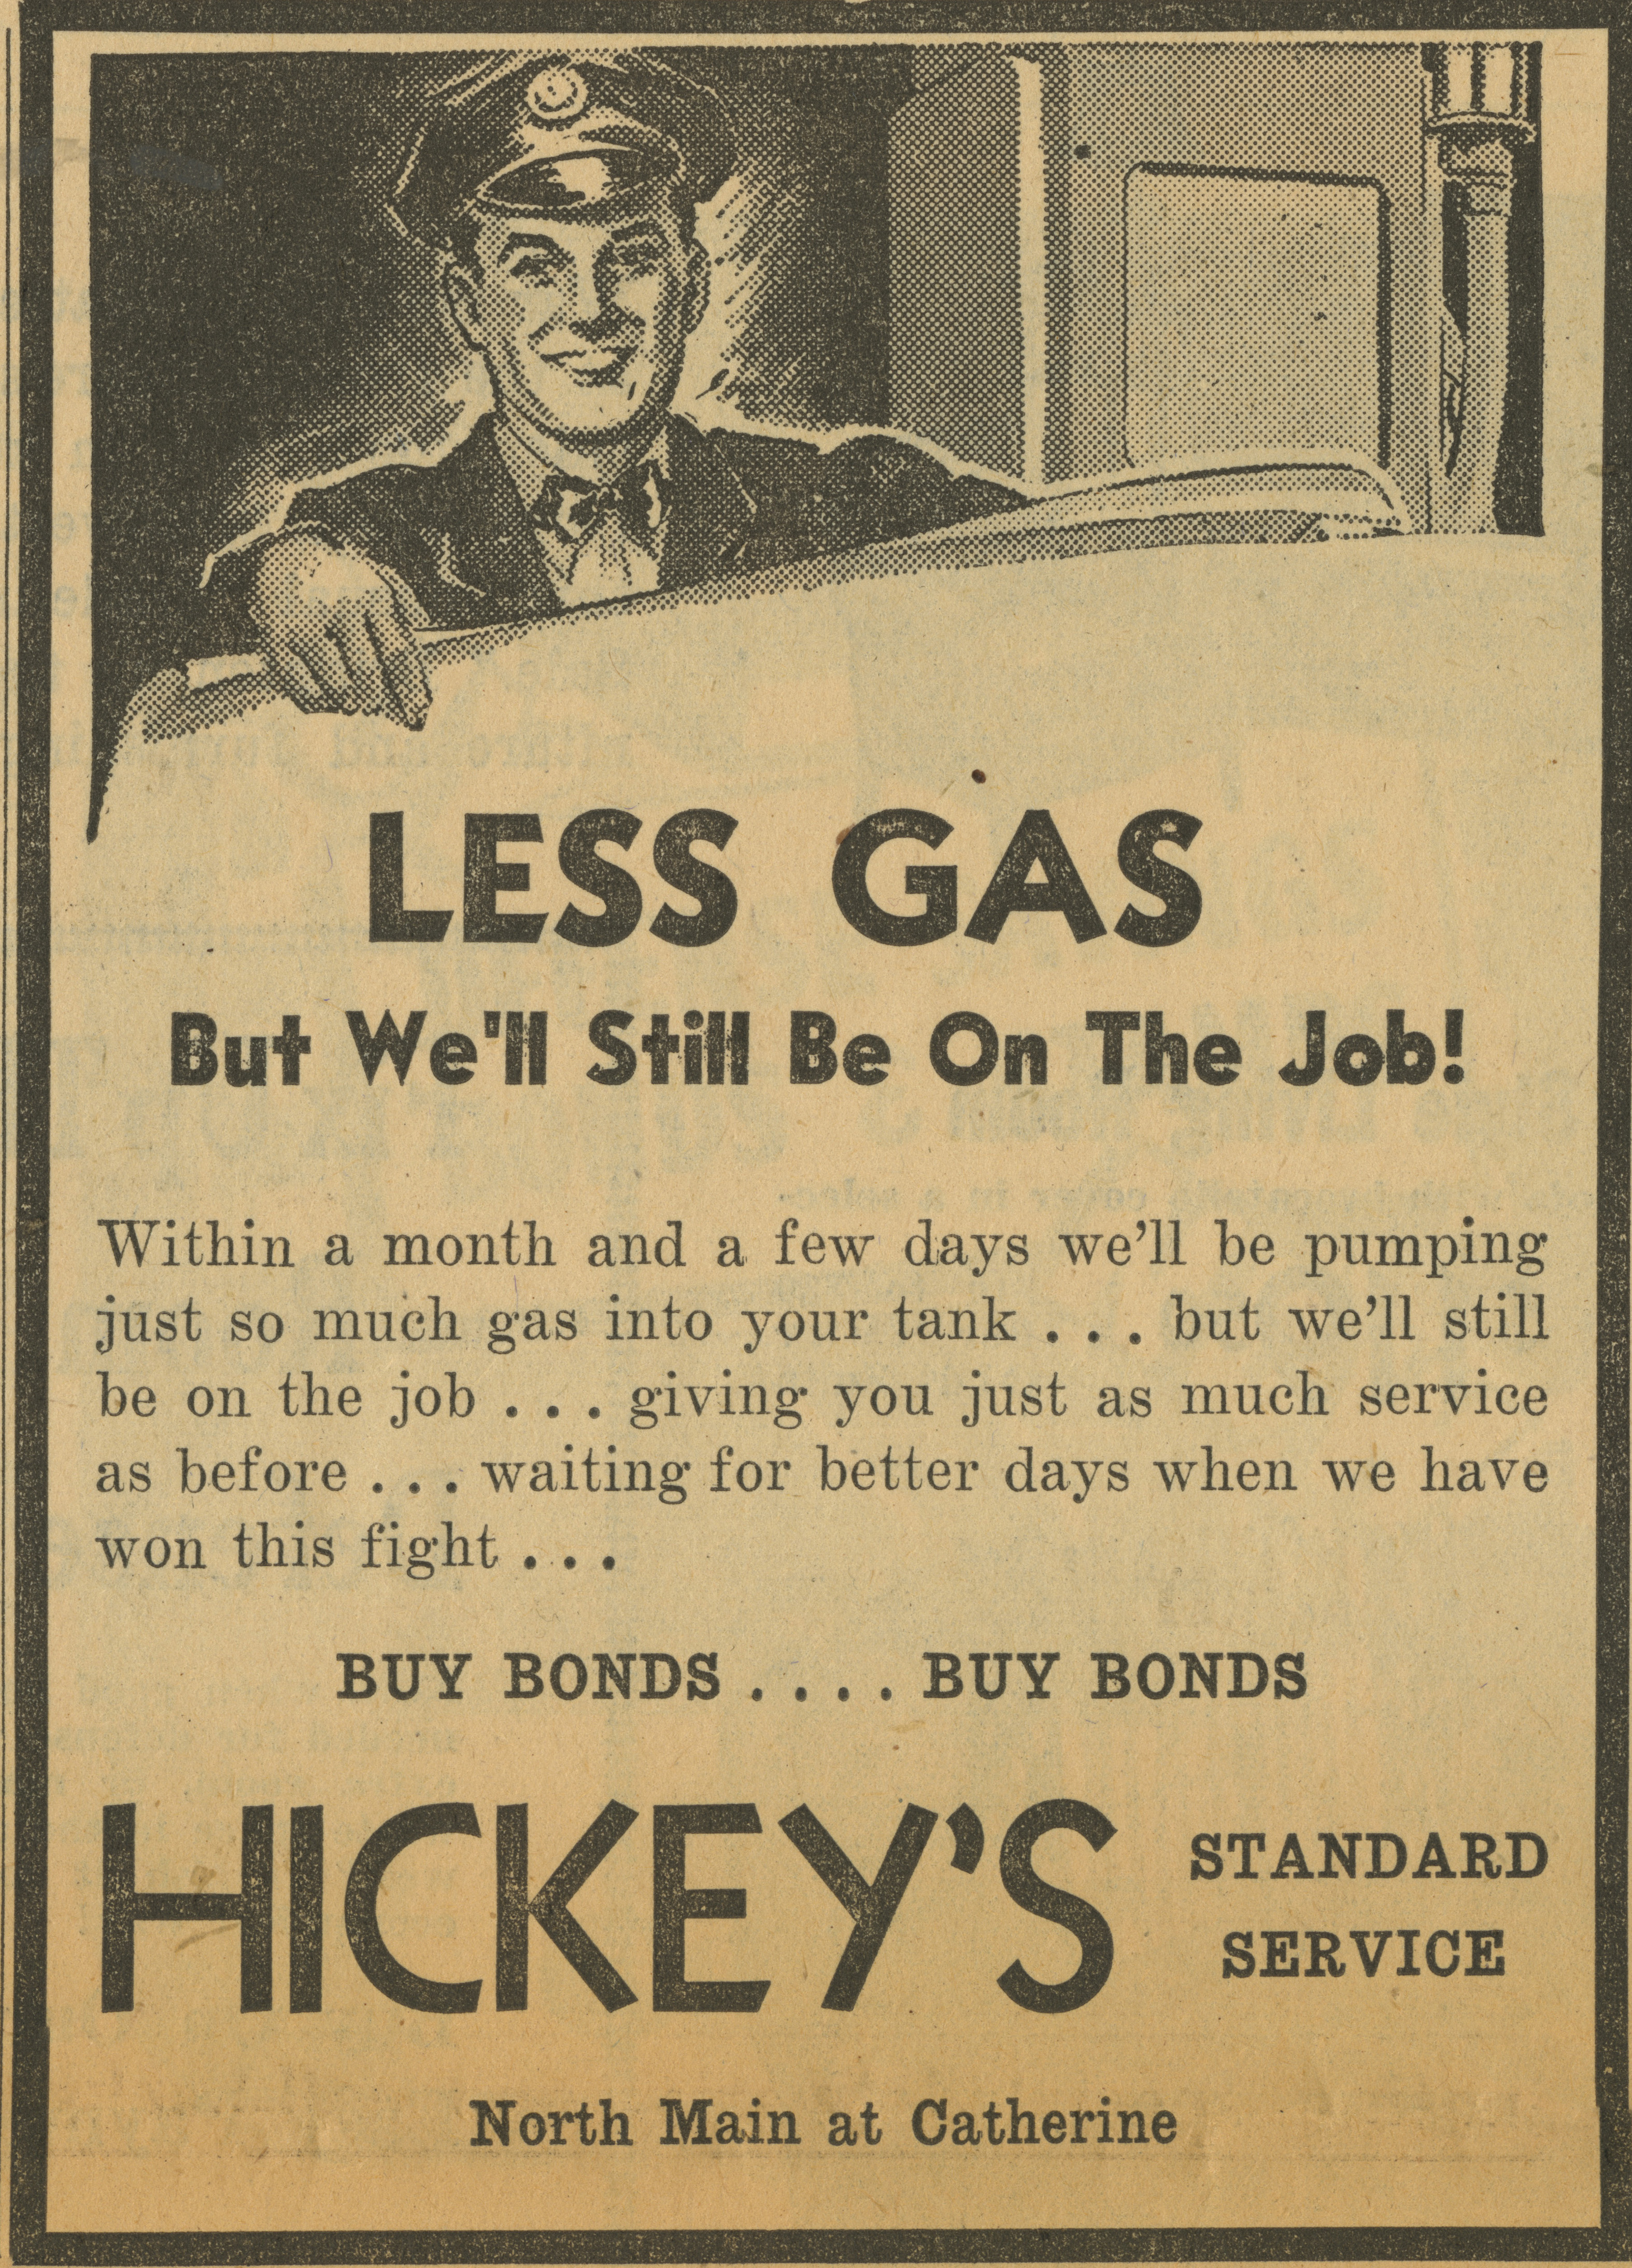 Hickey's Standard Service [advertisement] image